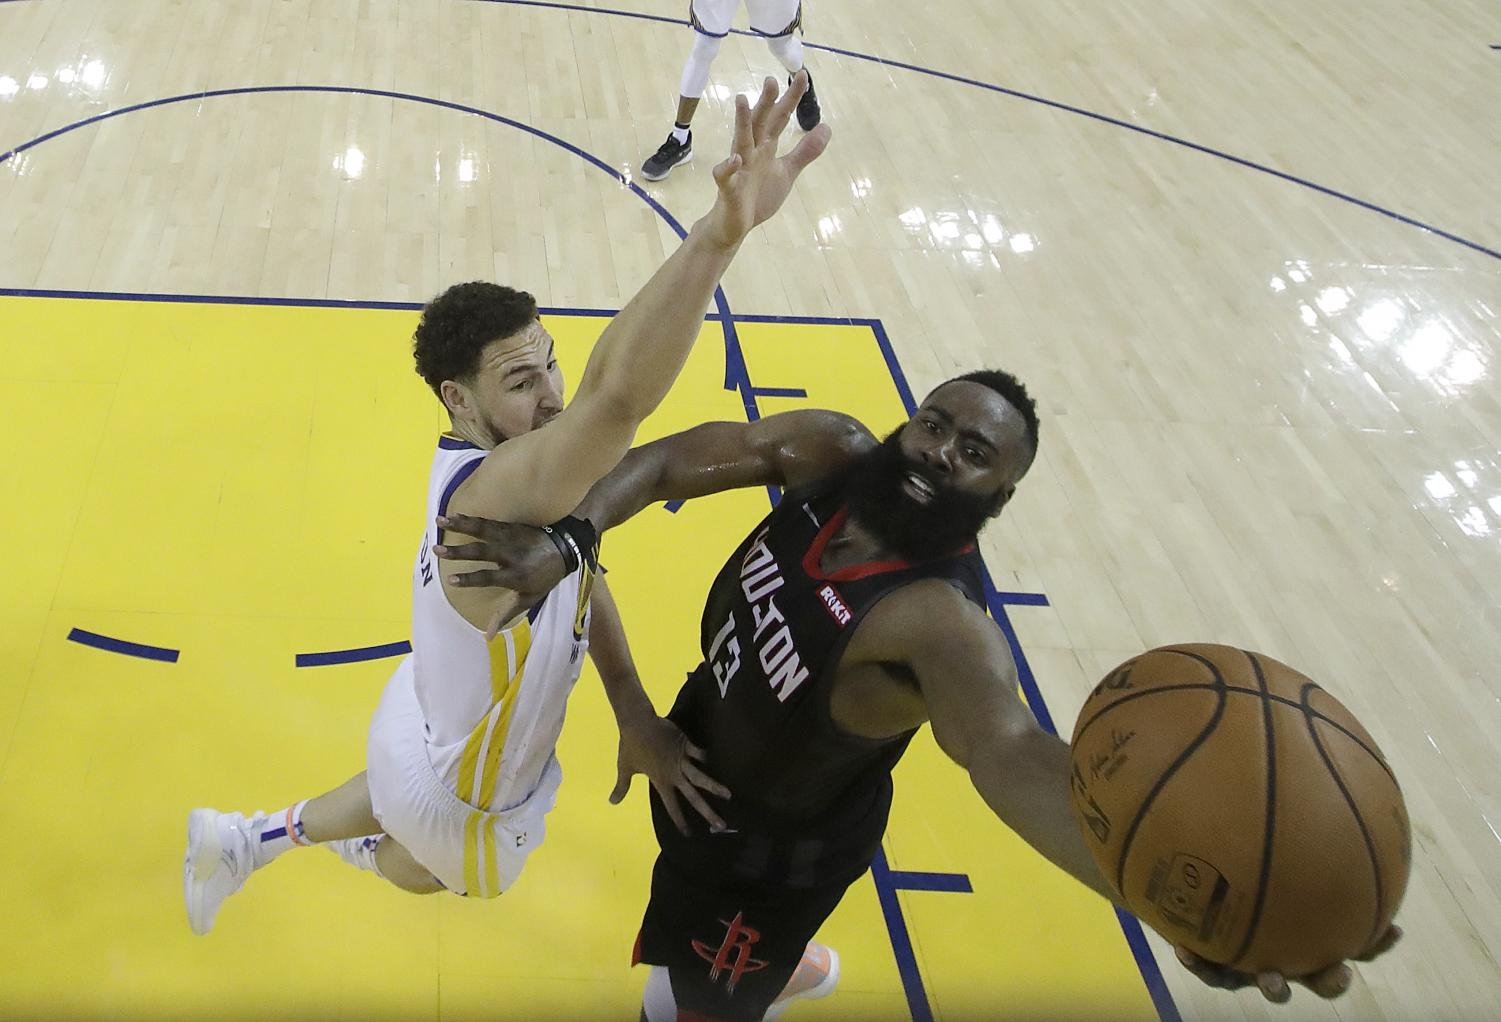 Houston Rockets guard James Harden, right, shoots against Golden State Warriors guard Klay Thompson during the second half of Game 1 of a second-round NBA basketball playoff series in Oakland, Calif., Sunday, April 28, 2019.